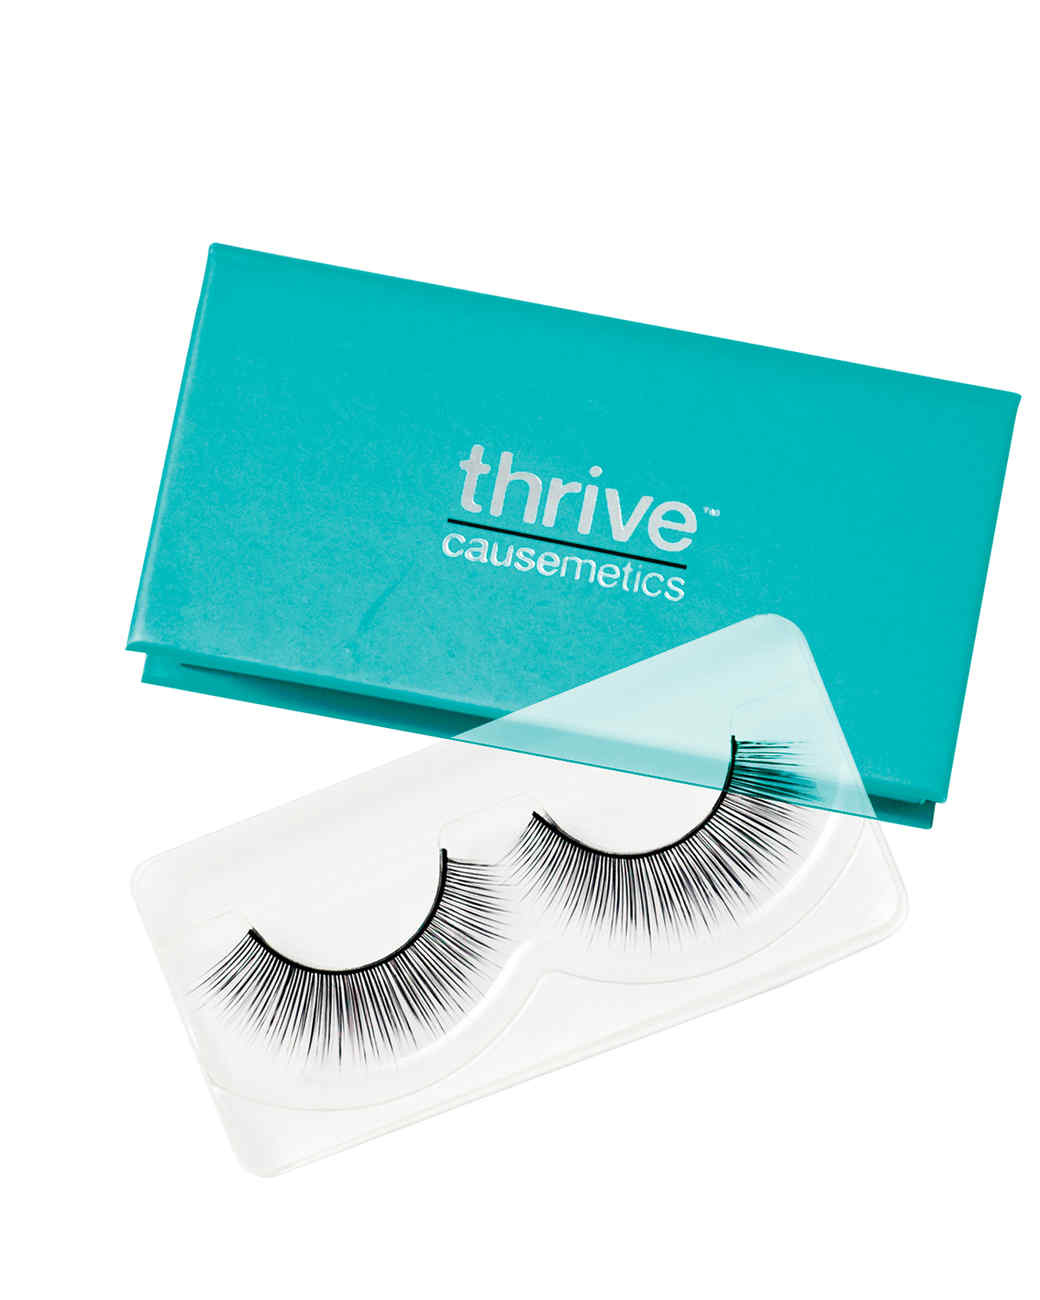 thrive-causemetics-false-eyelashes-071-d112618.jpg